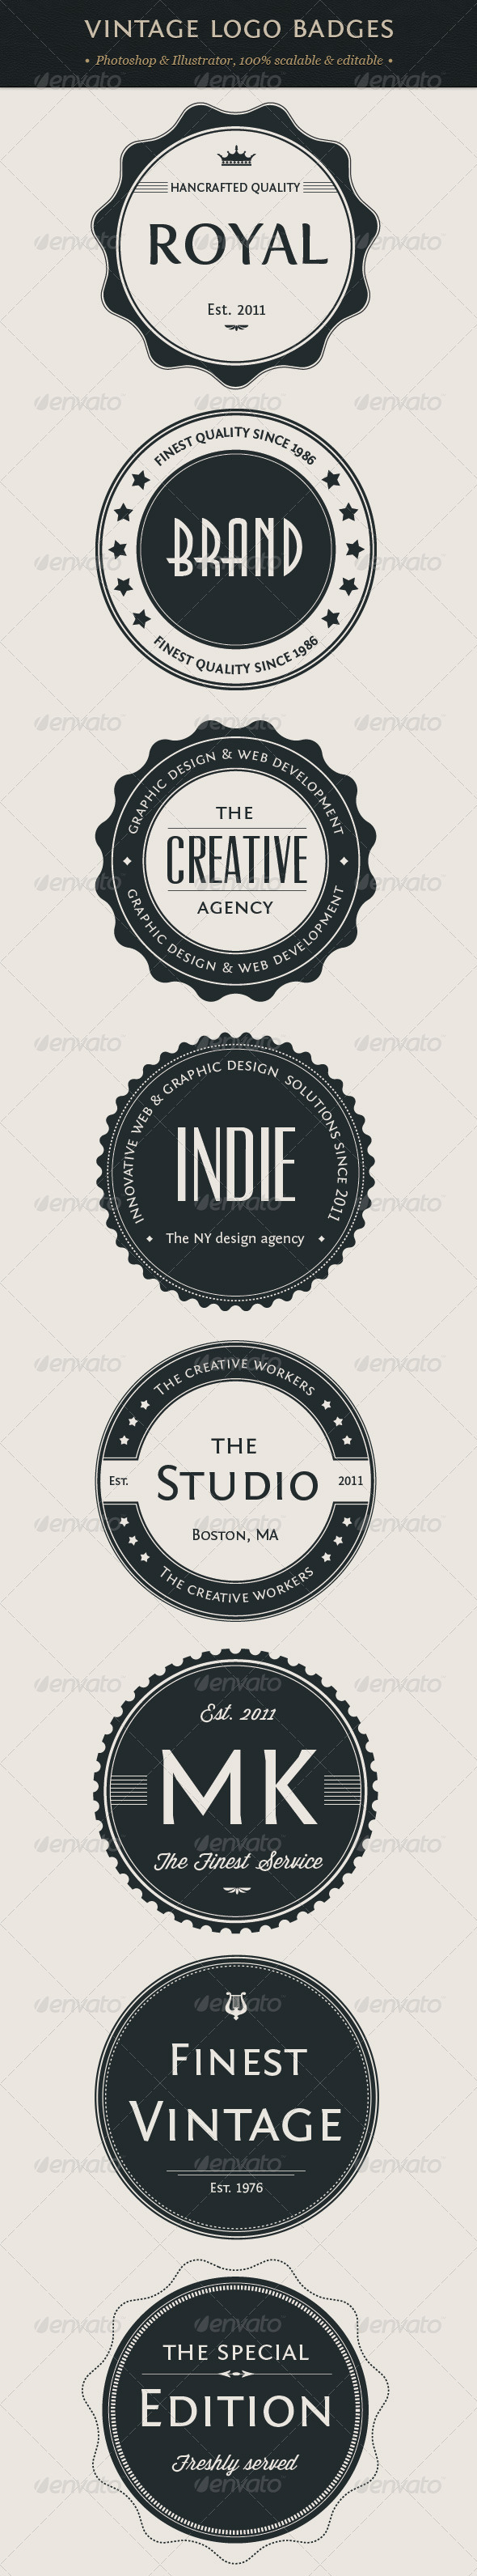 Vintage Logo Badges Set - Badges & Stickers Web Elements